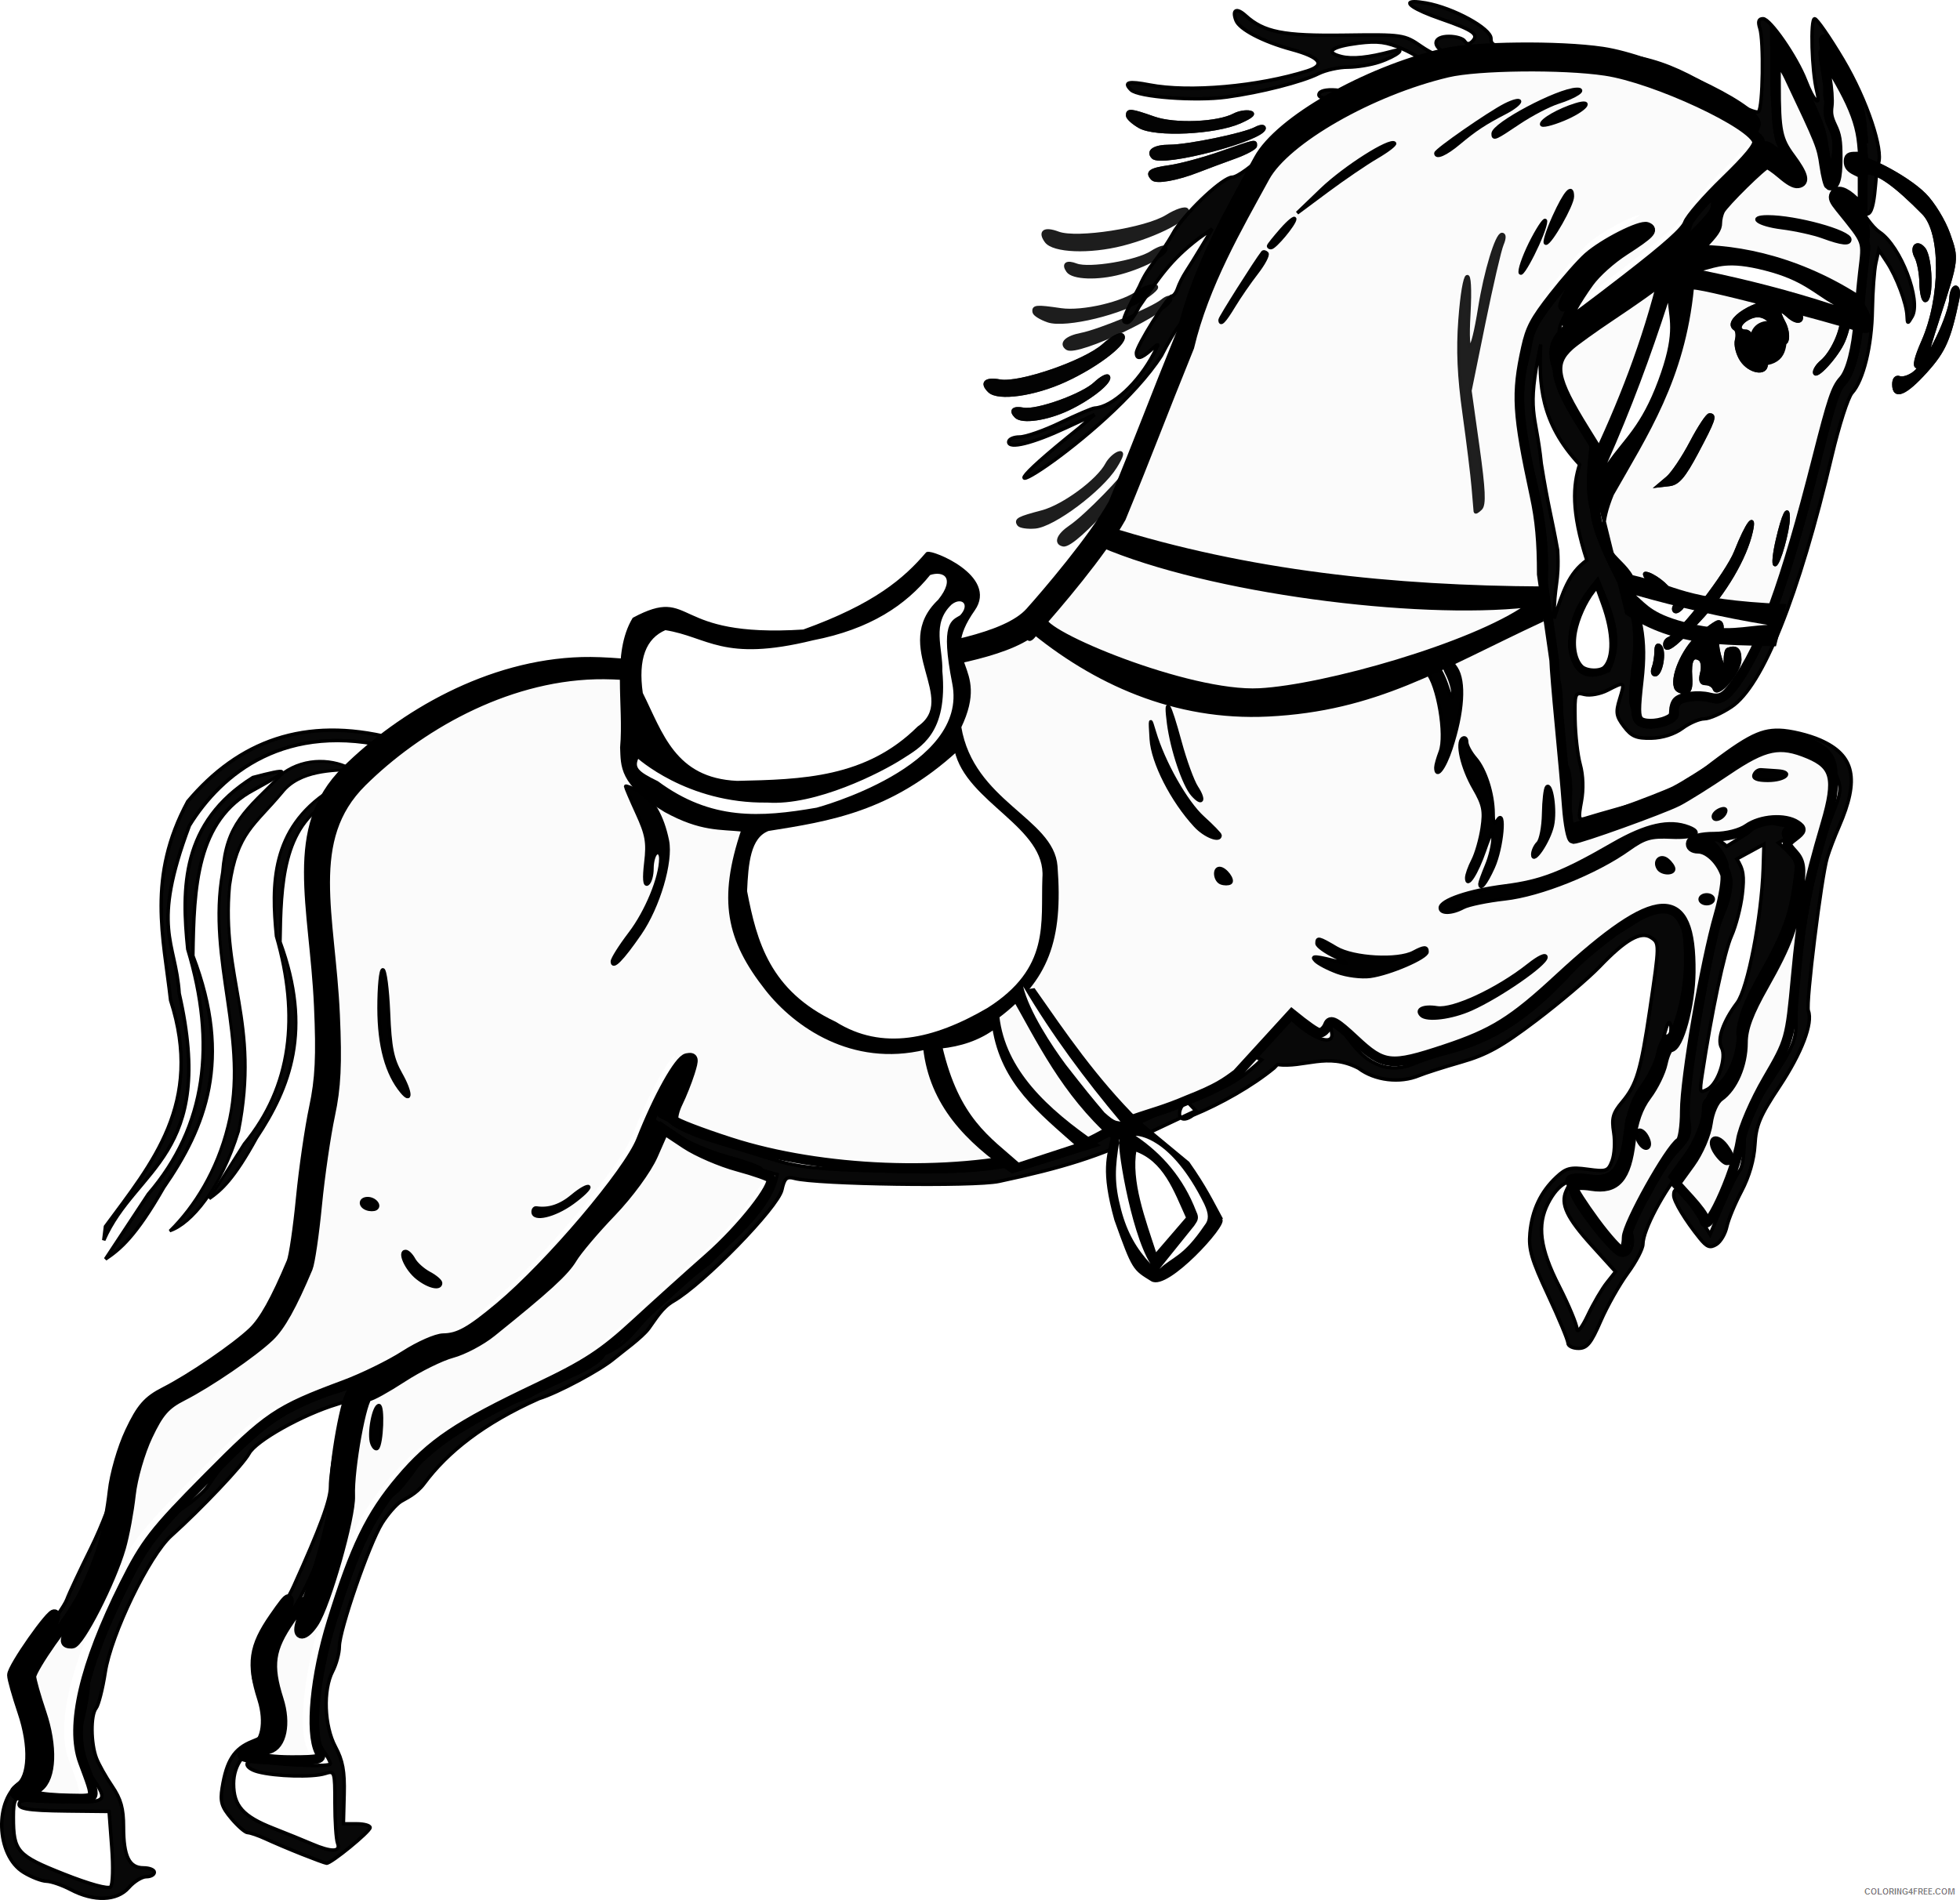 Jumping Horse Coloring Pages warszawianka jumping horse outline 2 Printable Coloring4free